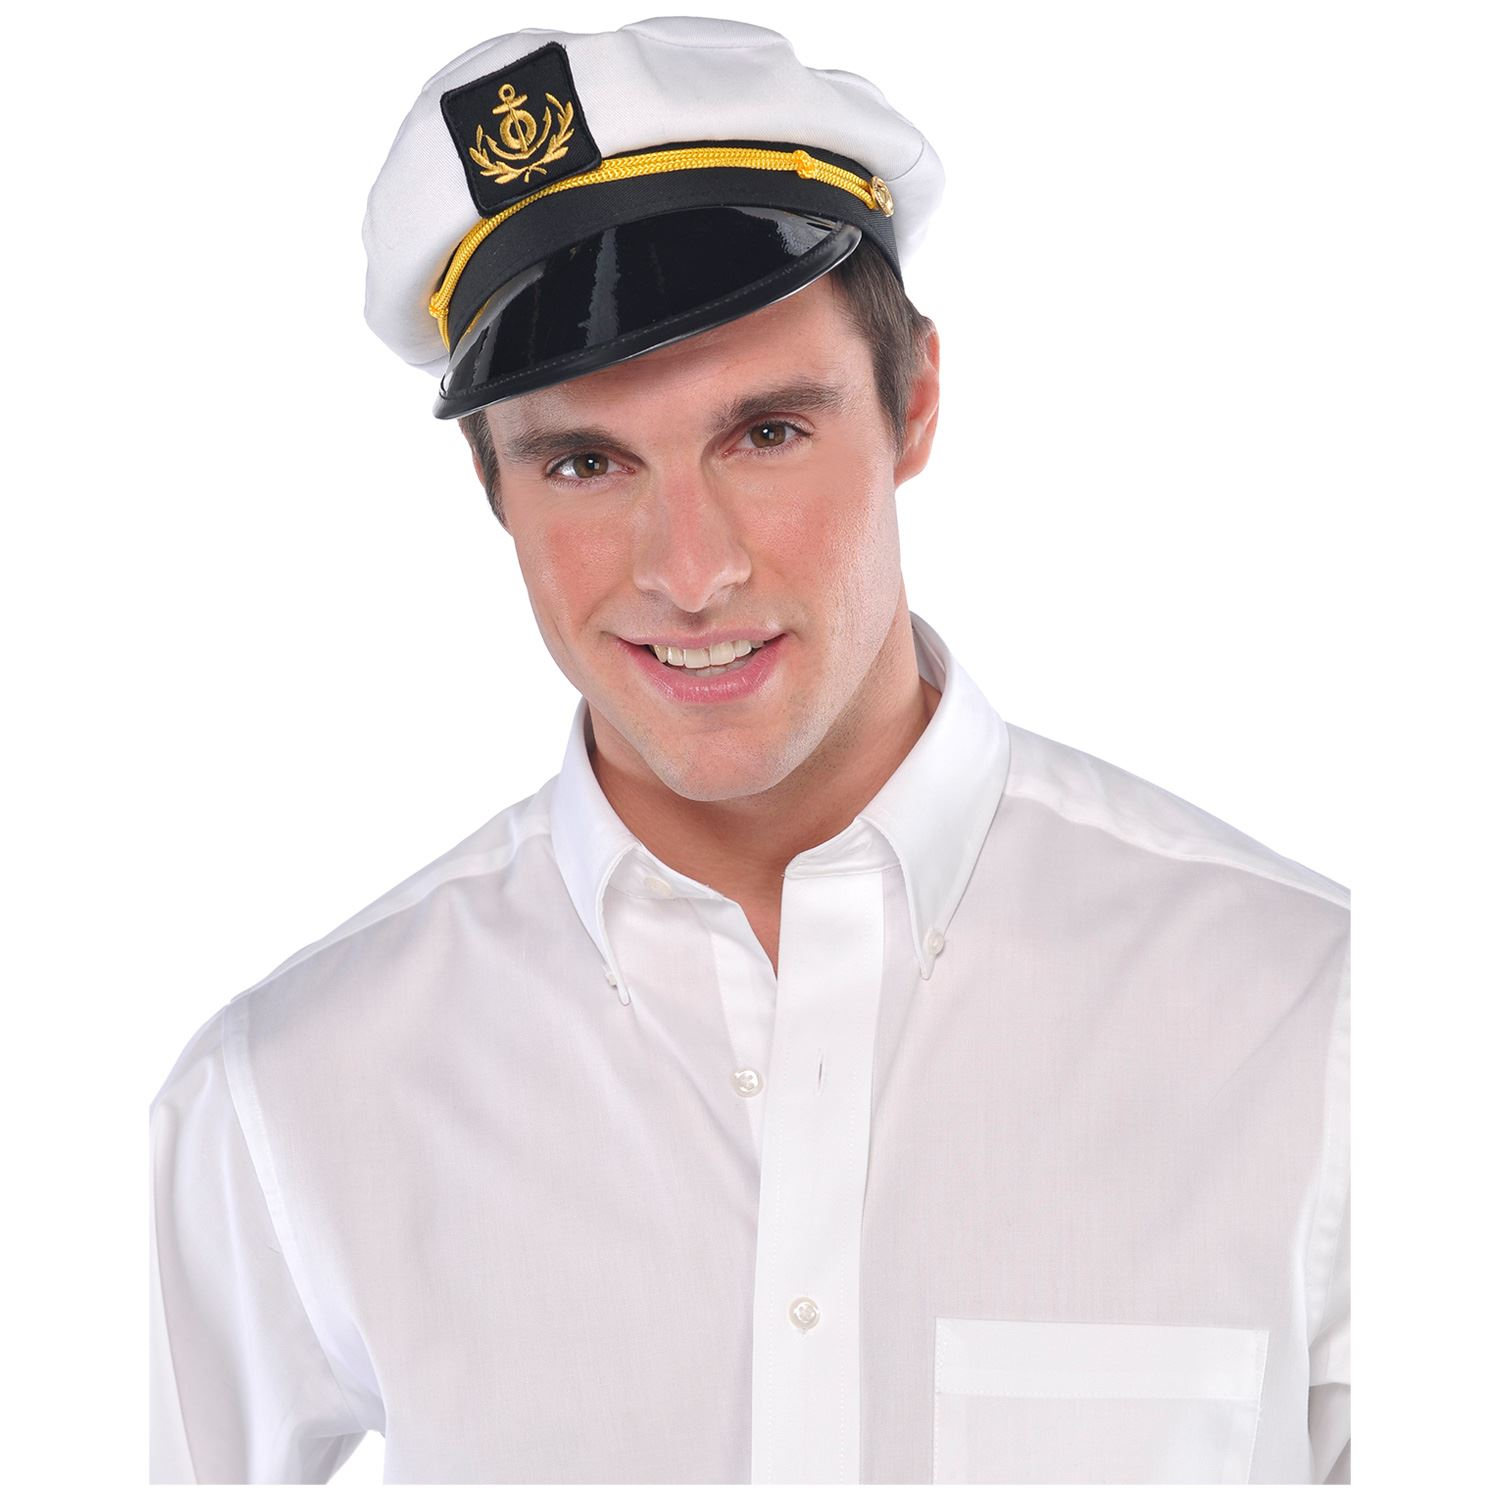 Details about Adults Mens Ladies Sailor Skipper Ship Captain Hat Navy Fancy  Dress Accessory 4777f79082f1